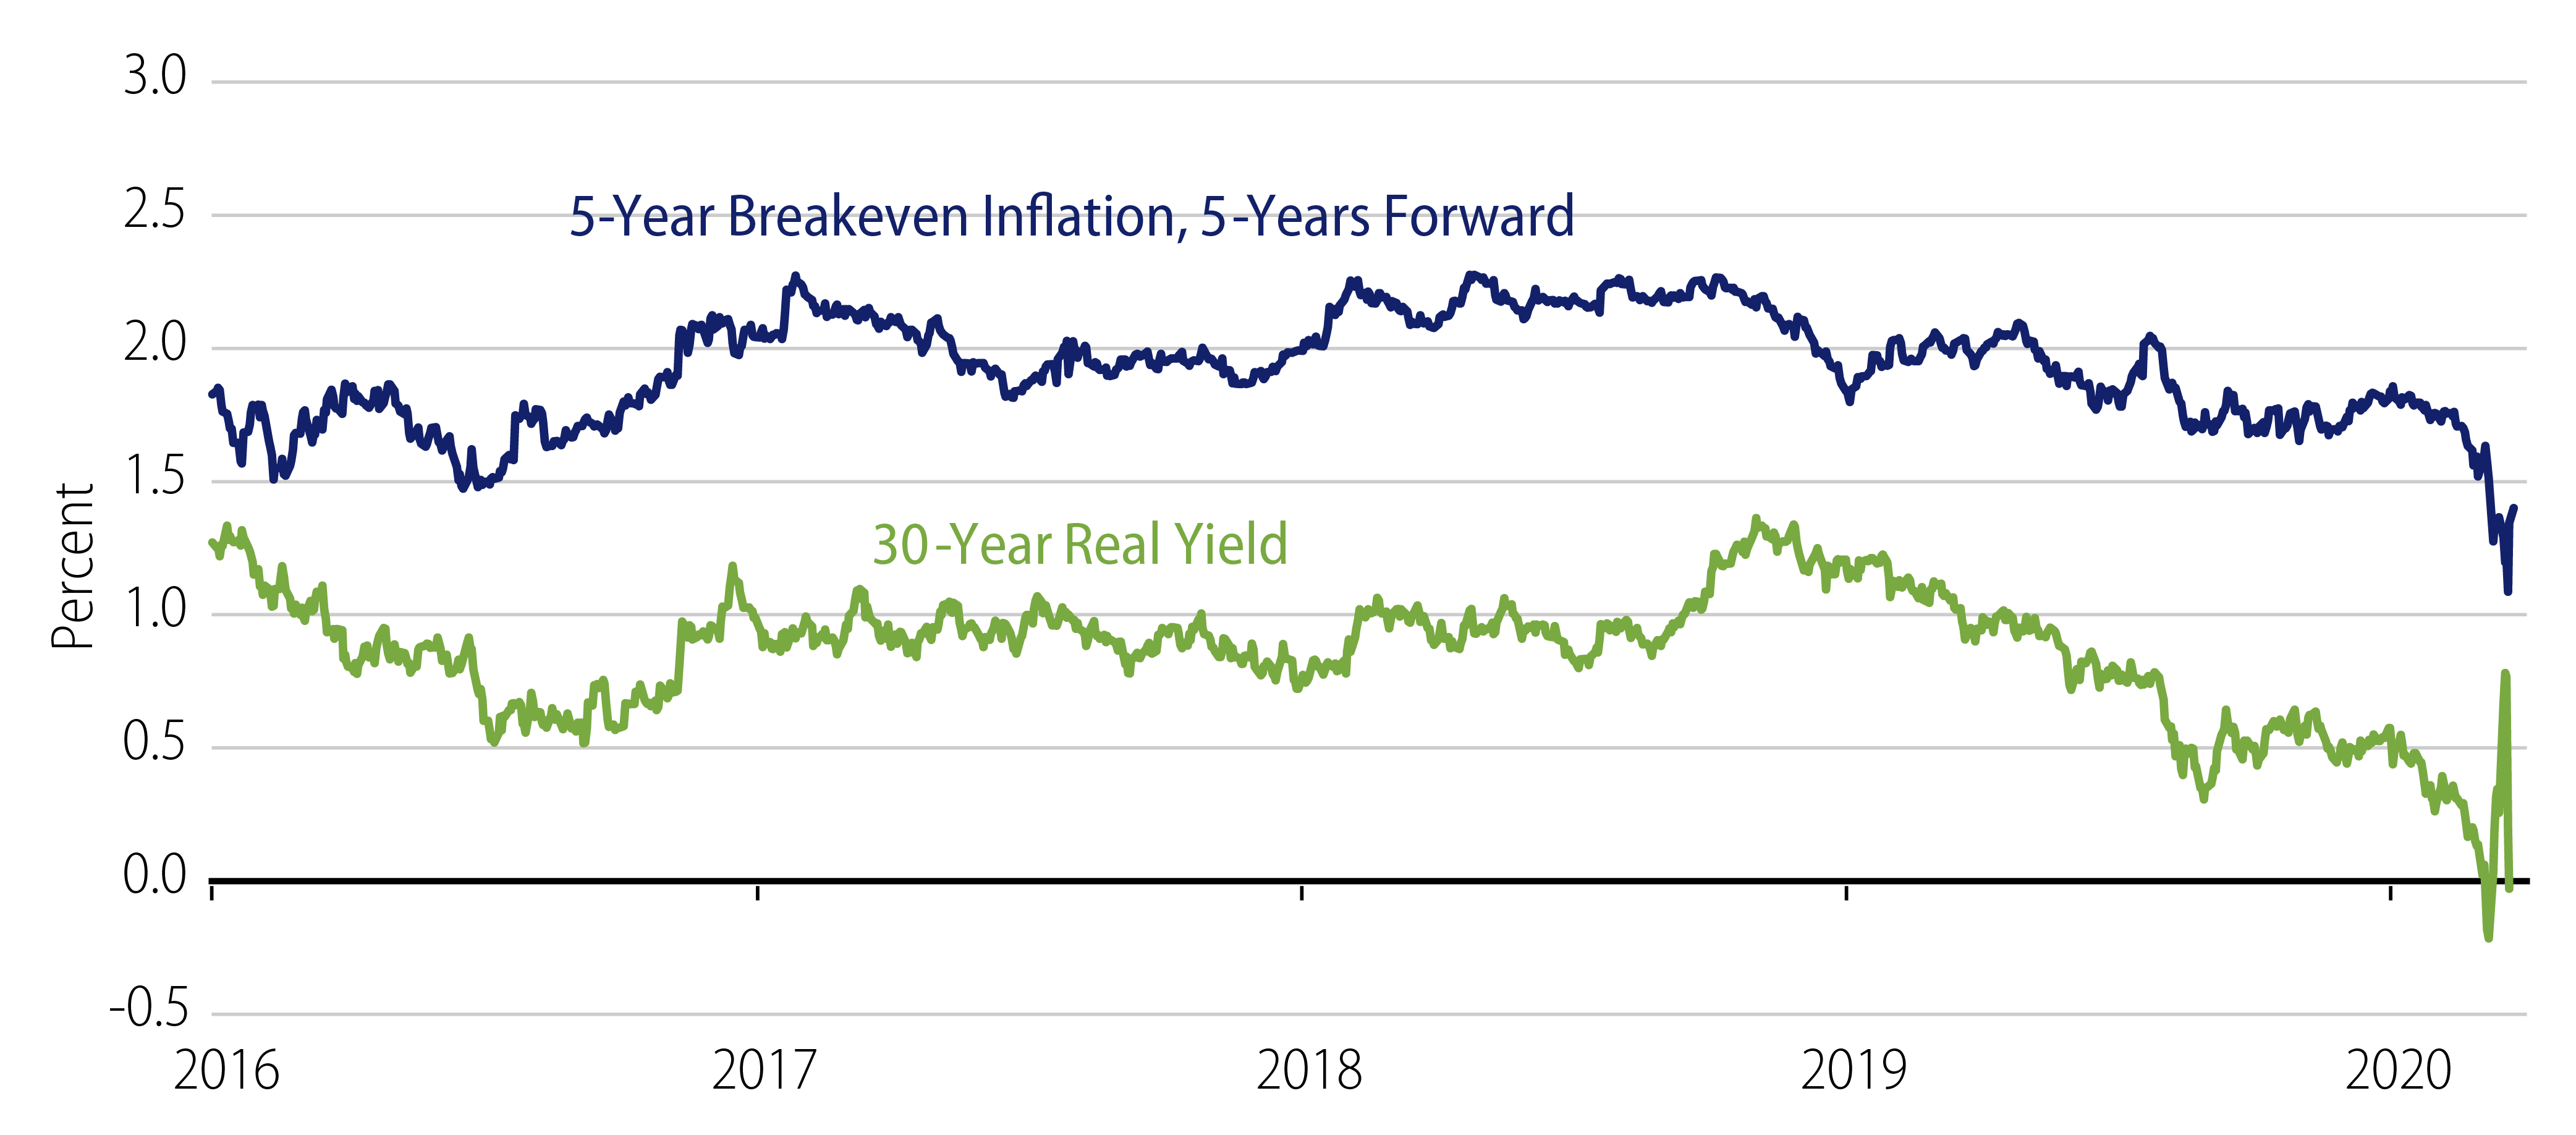 Explore Future 5-Year Breakeven Inflation vs. 30-Year Real Yields